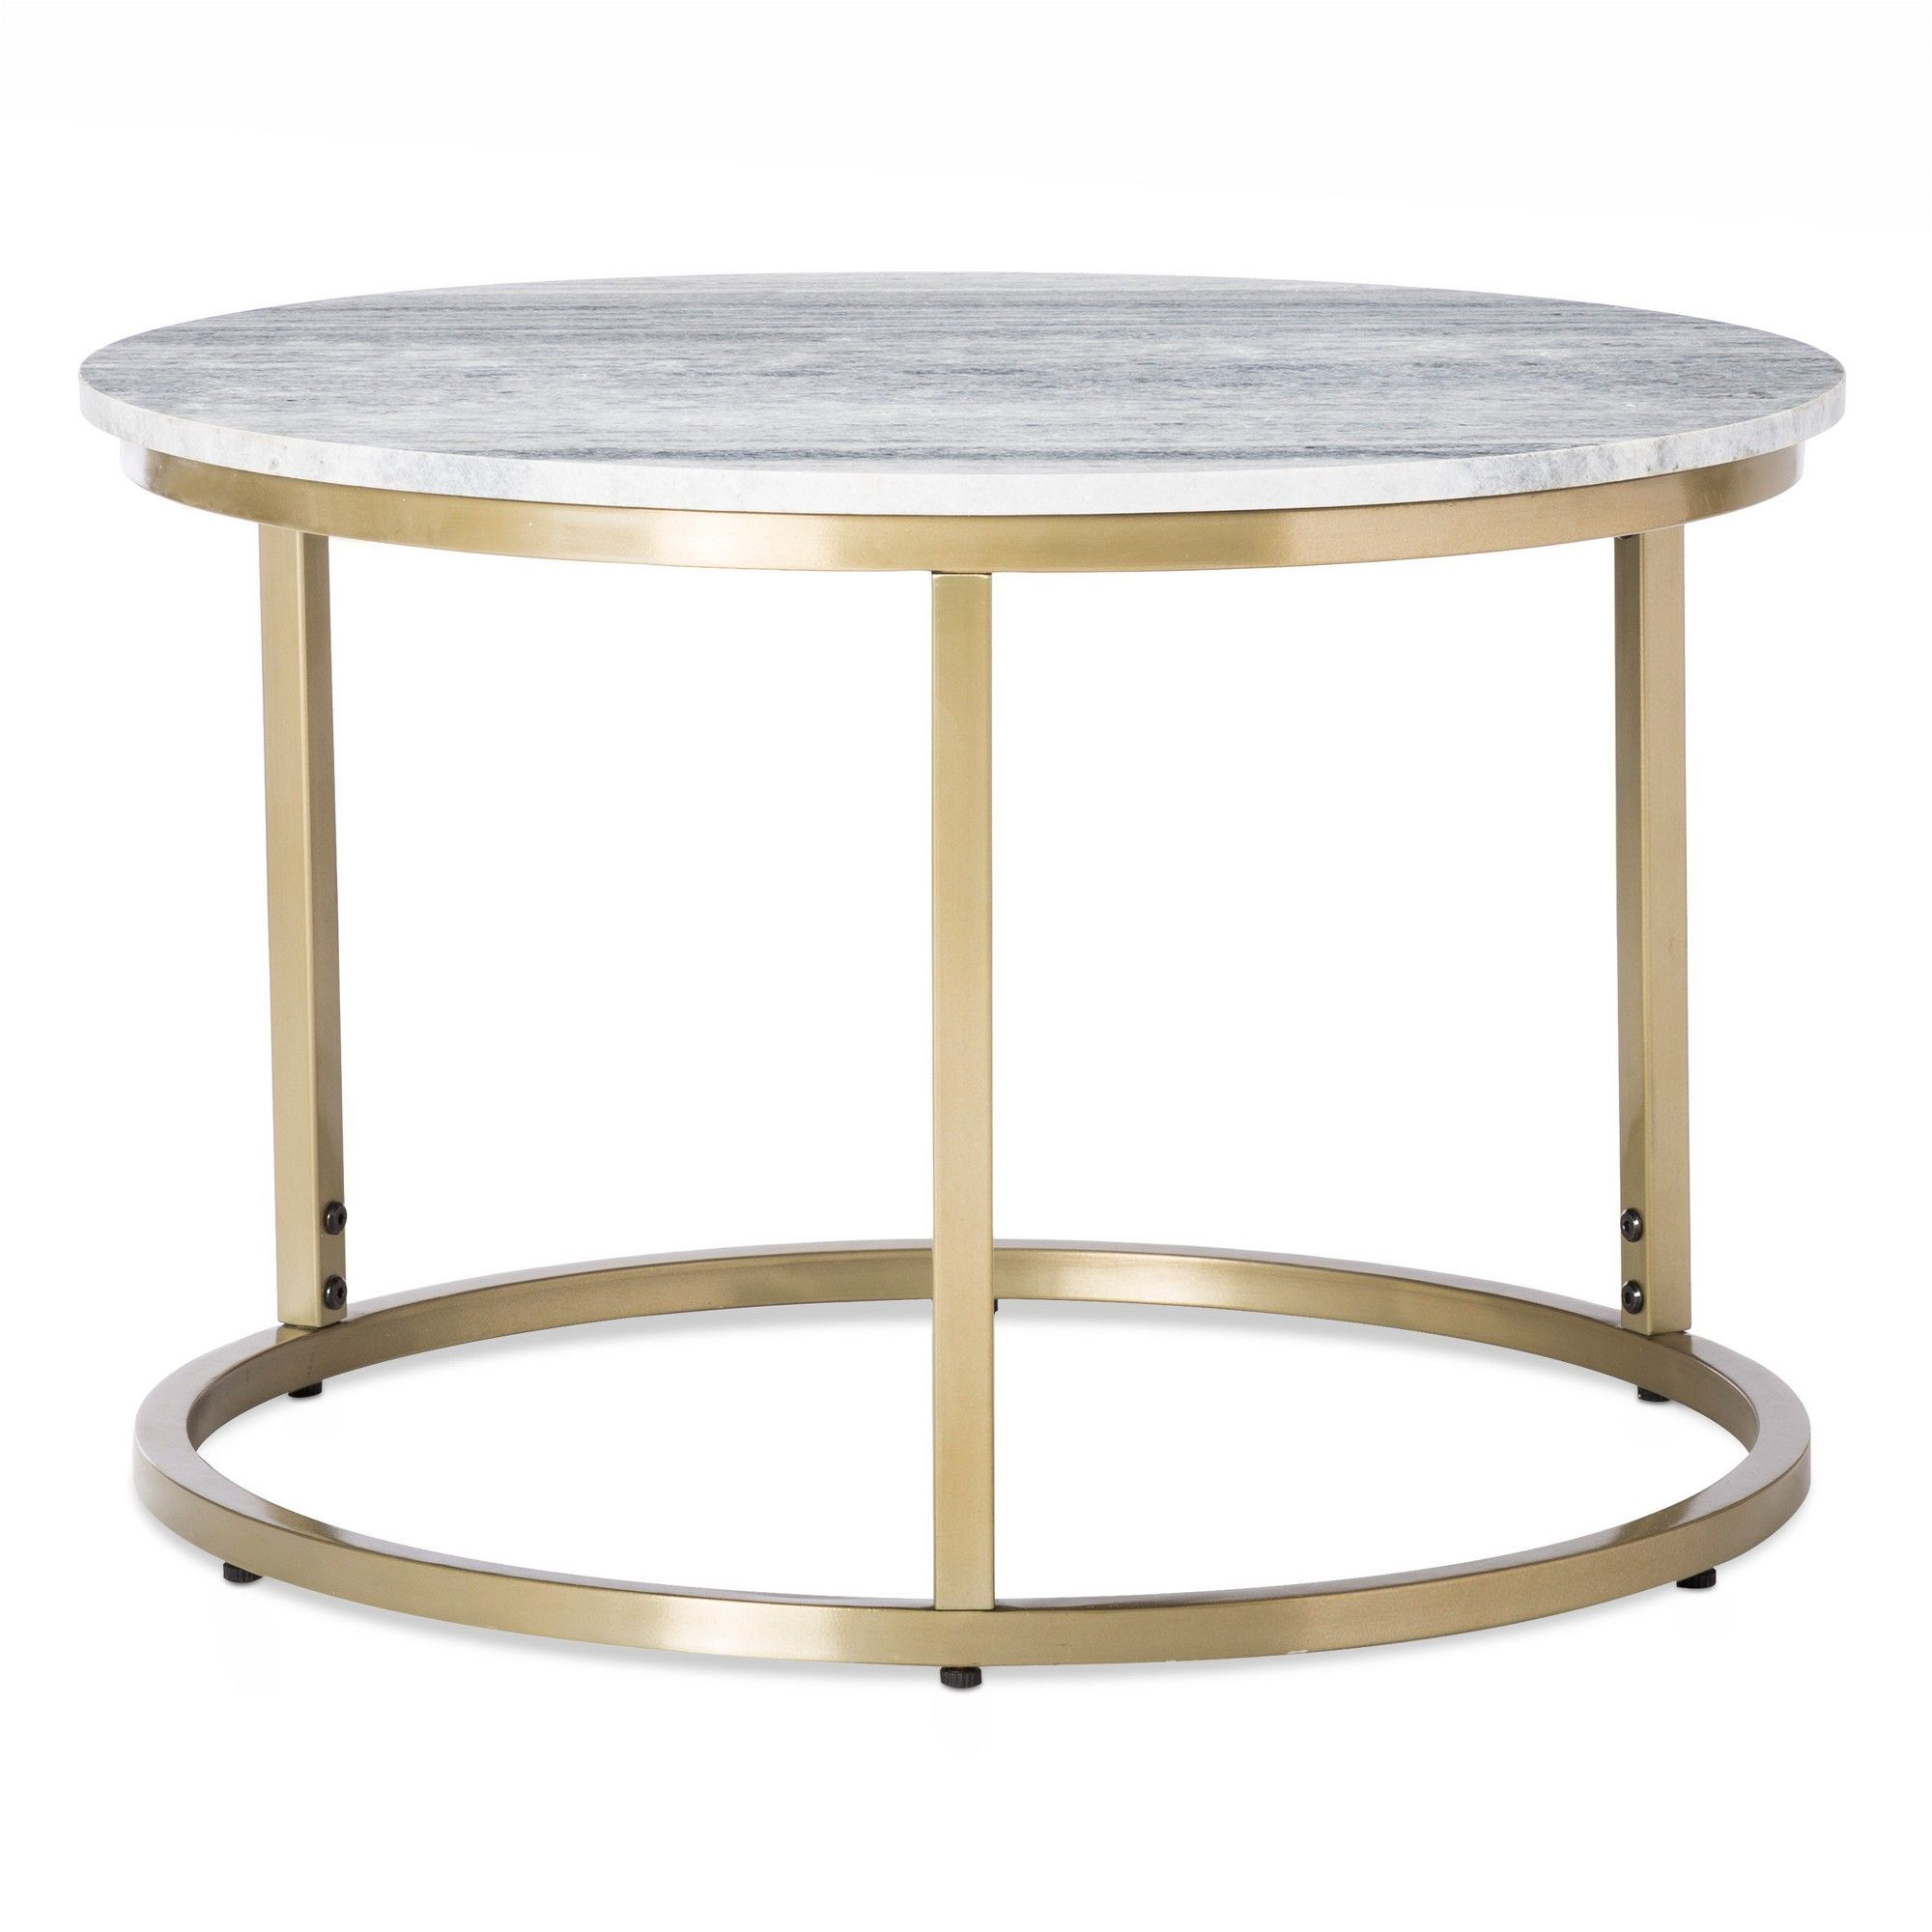 small marble top coffee table gold threshold products accent ethan allen used furniture starfish lamp tiffany style butterfly teak dining chairs drummer throne chair white corner